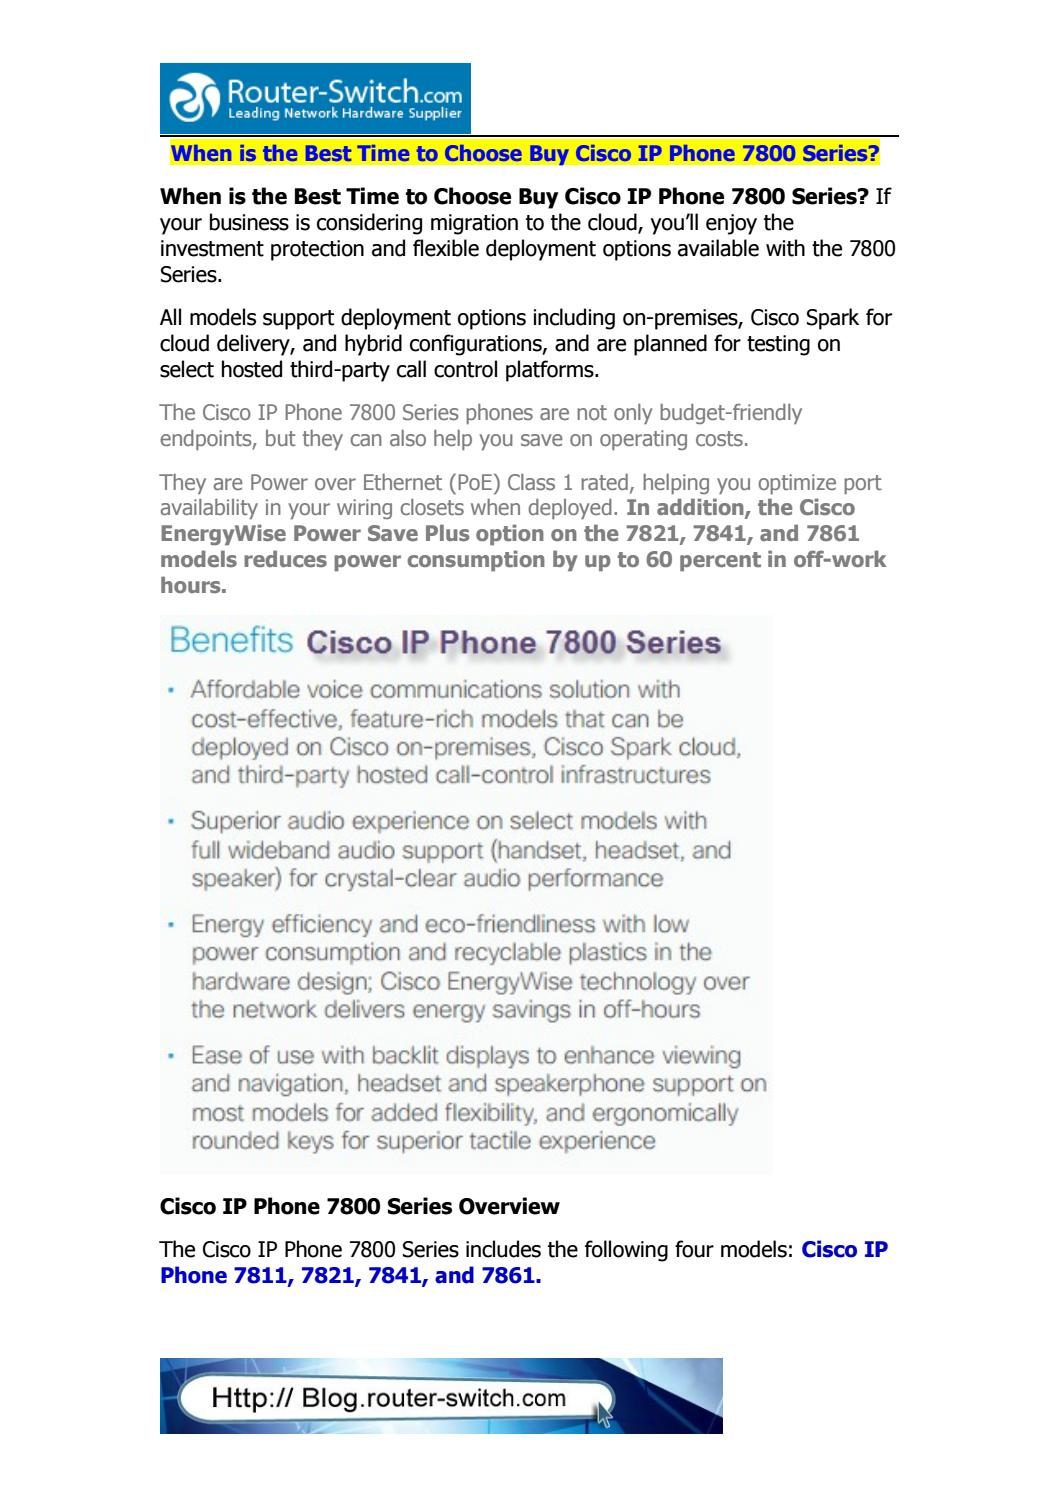 When is the best time to choose buy cisco ip phone 7800